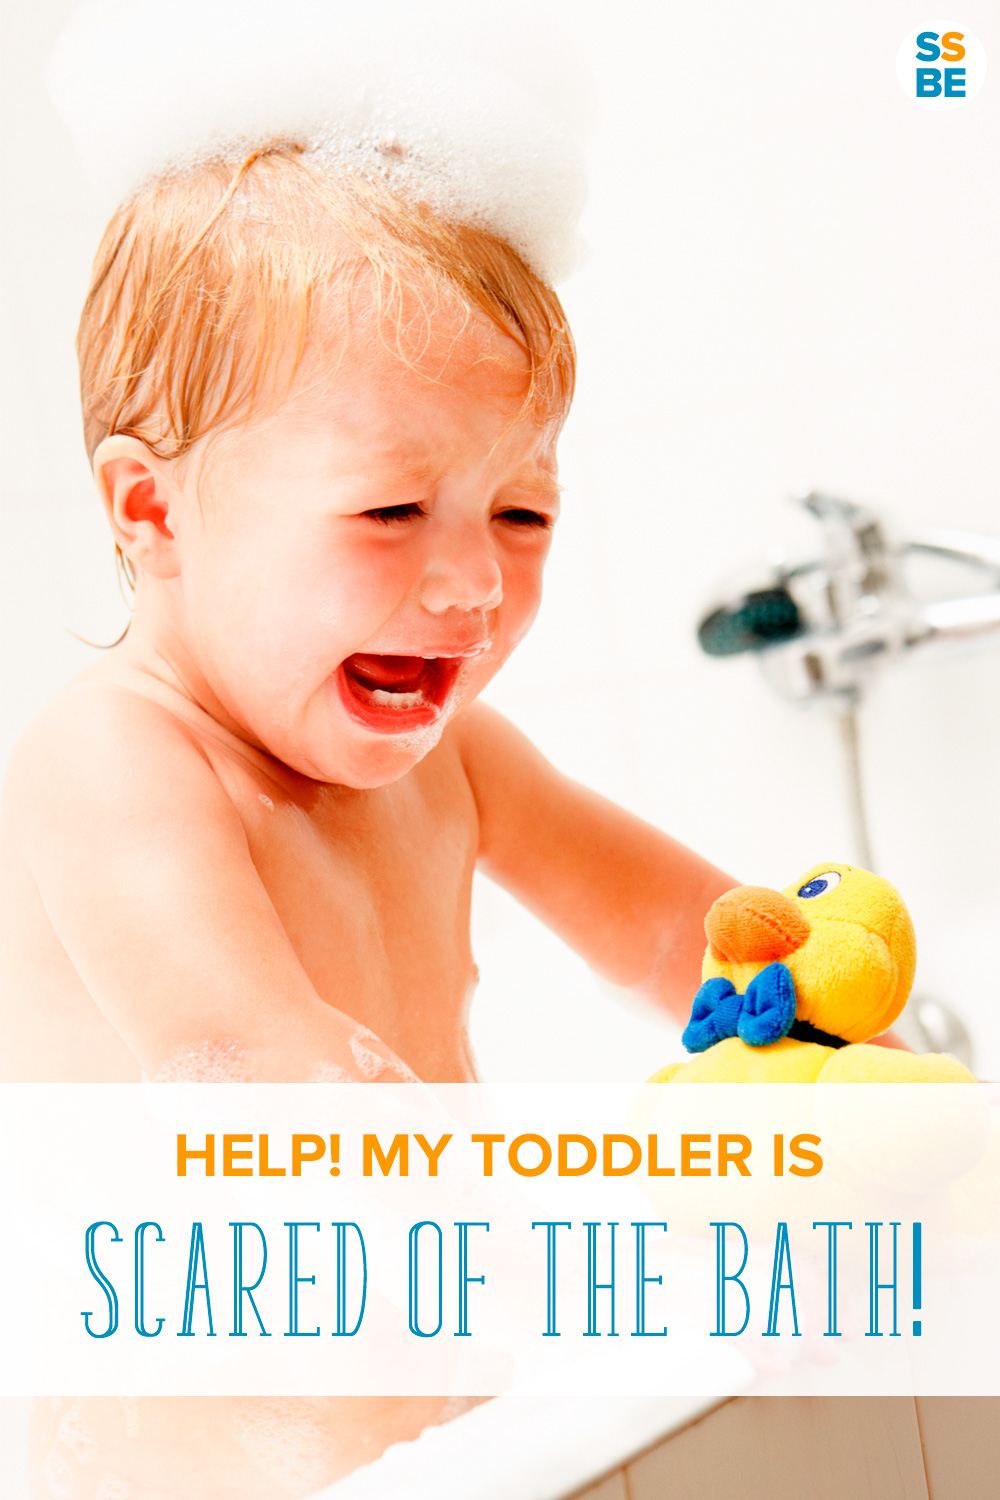 Is your toddler scared of the bath? If your child has a fear of bath time, check out tips on how to help make bath time easy and fun.